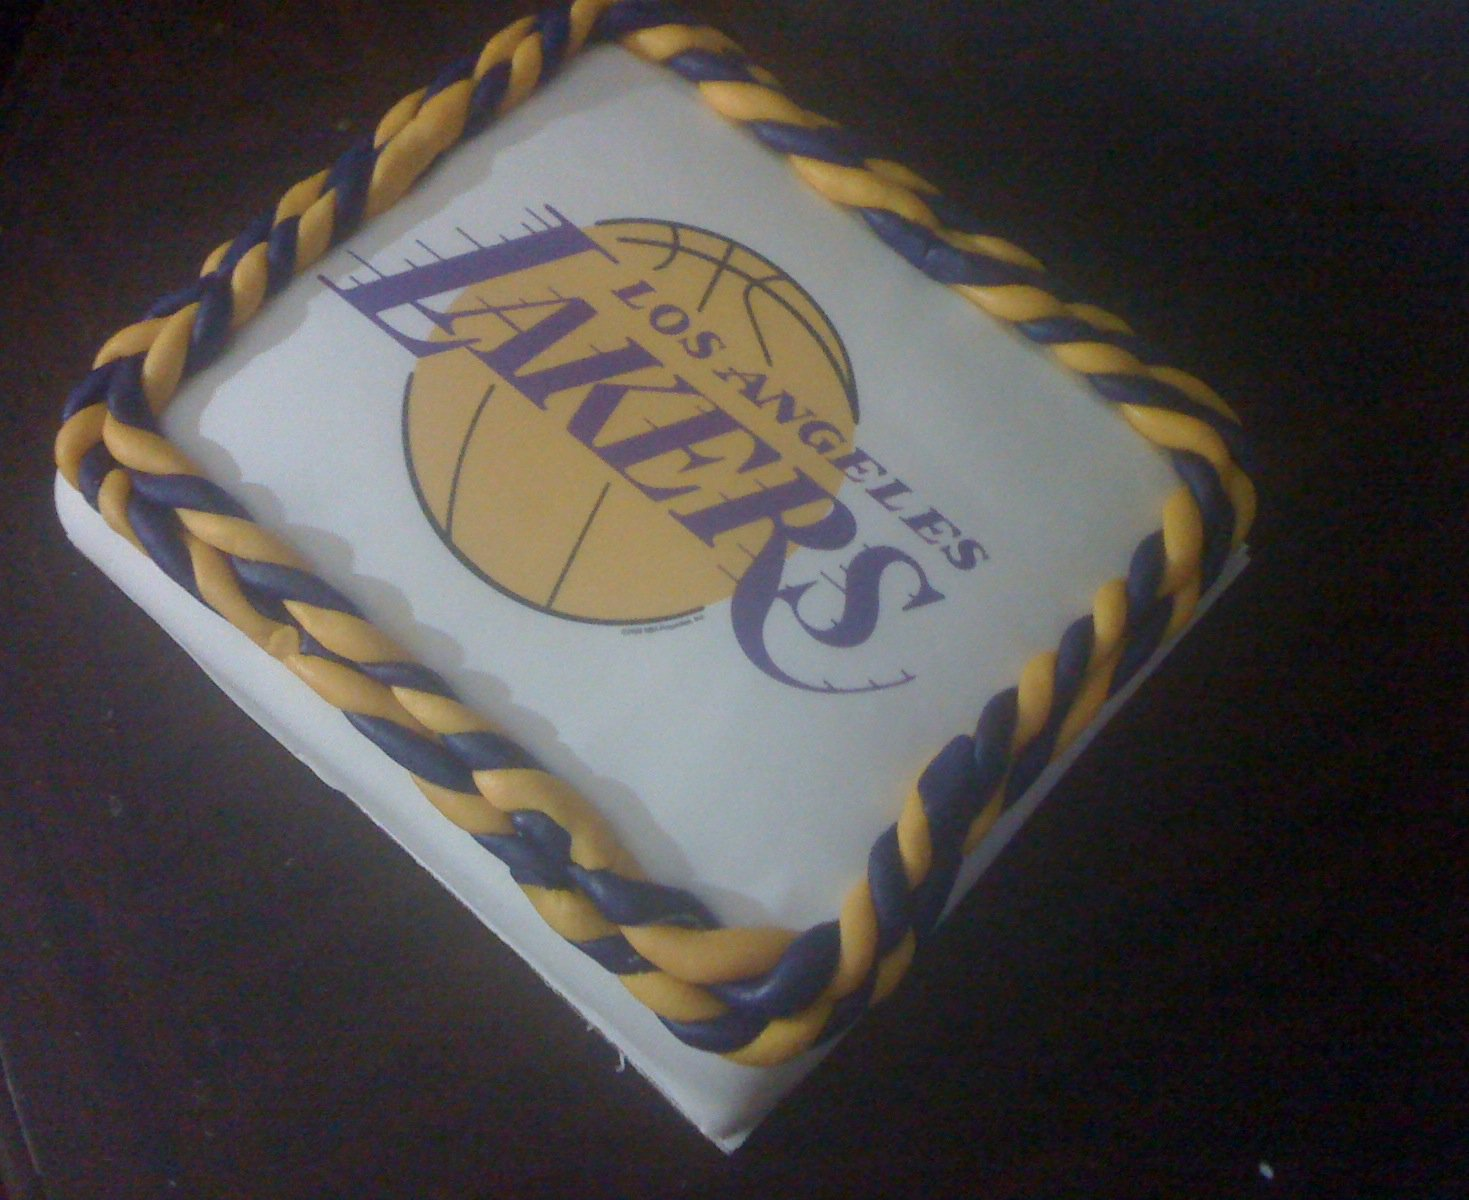 Crazy 4 Sweets Lakers Birthday Cake